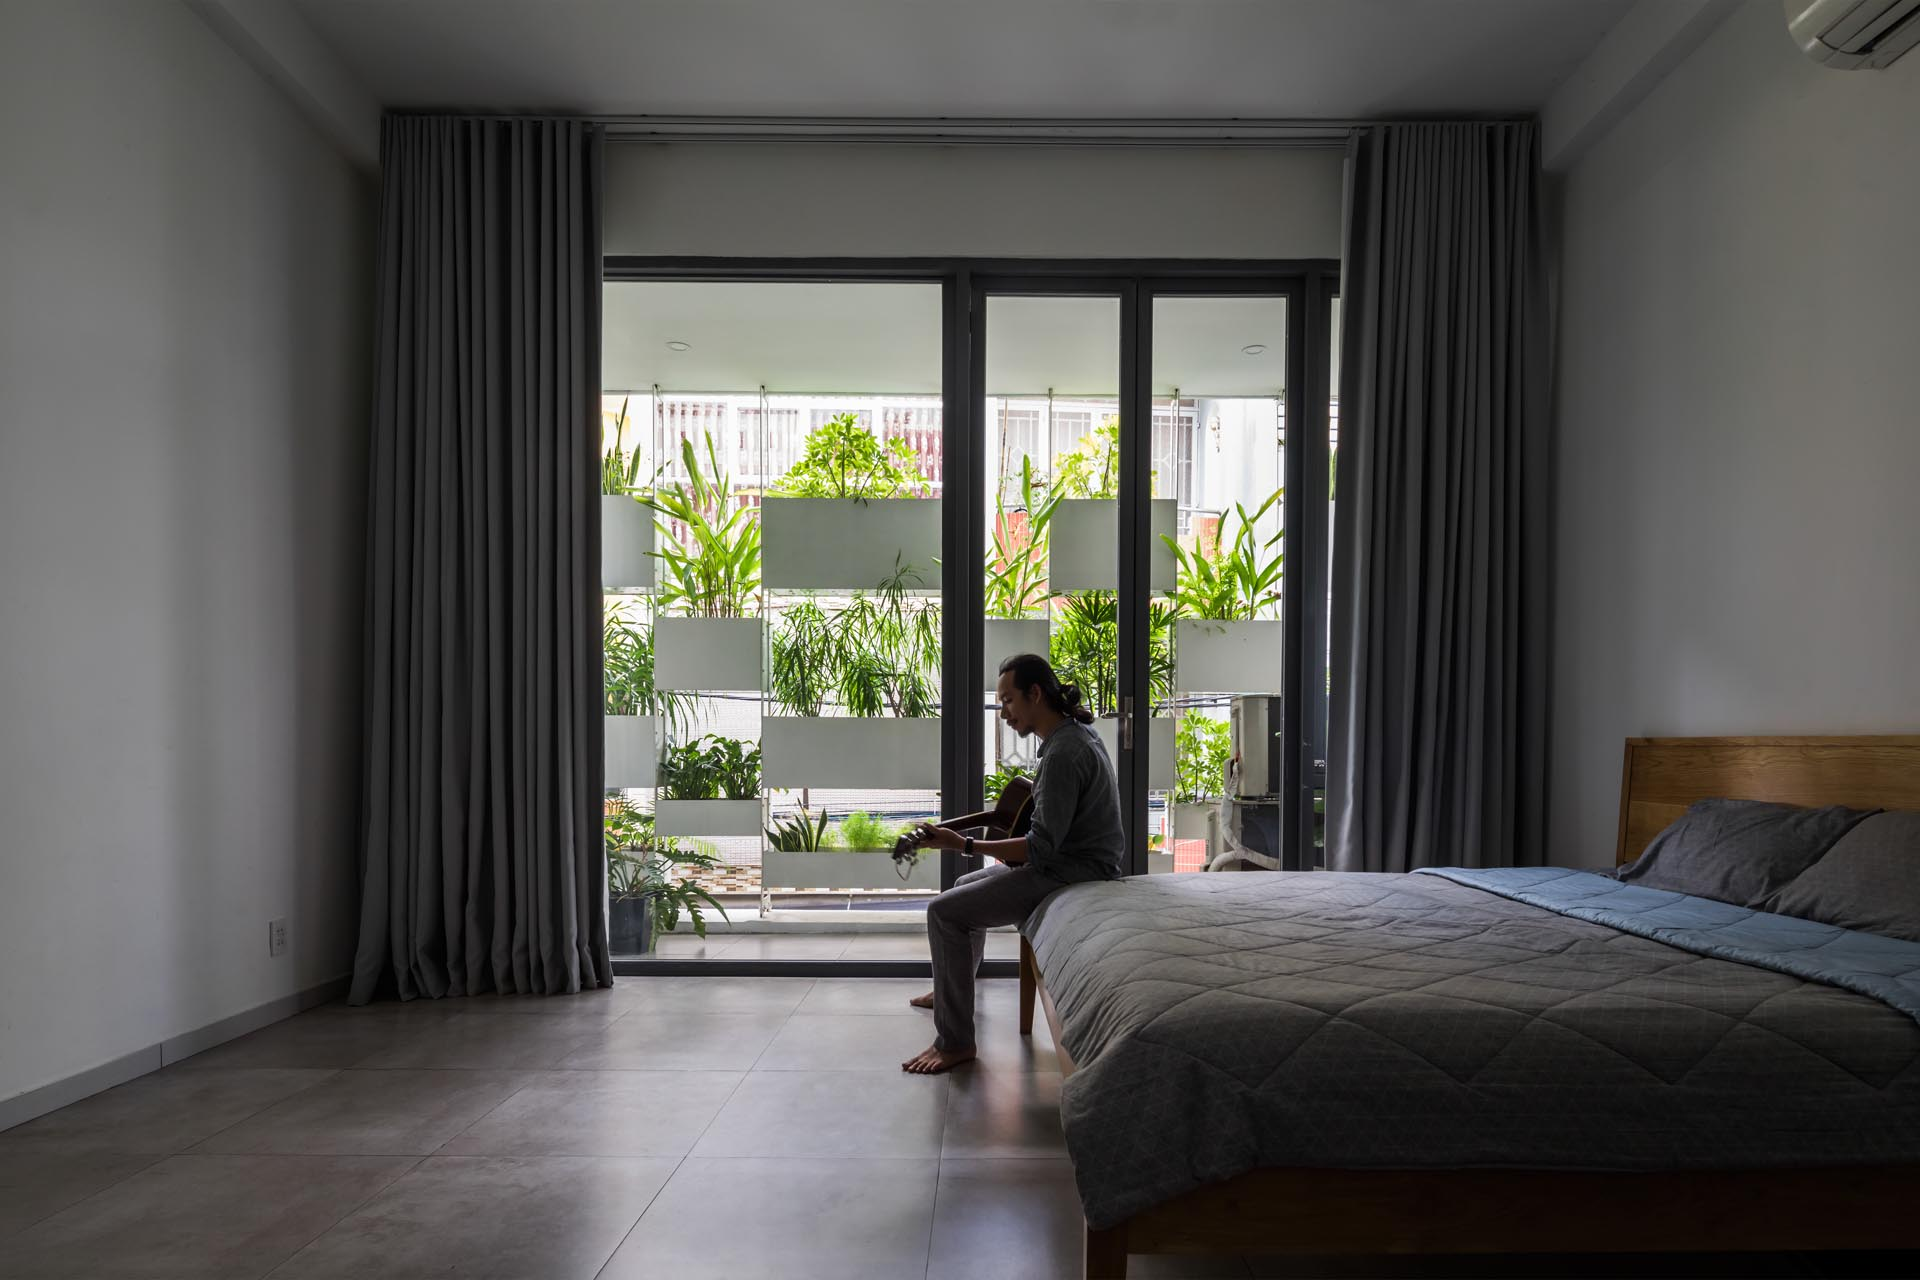 A minimalist bedroom with a view of built-in planters.